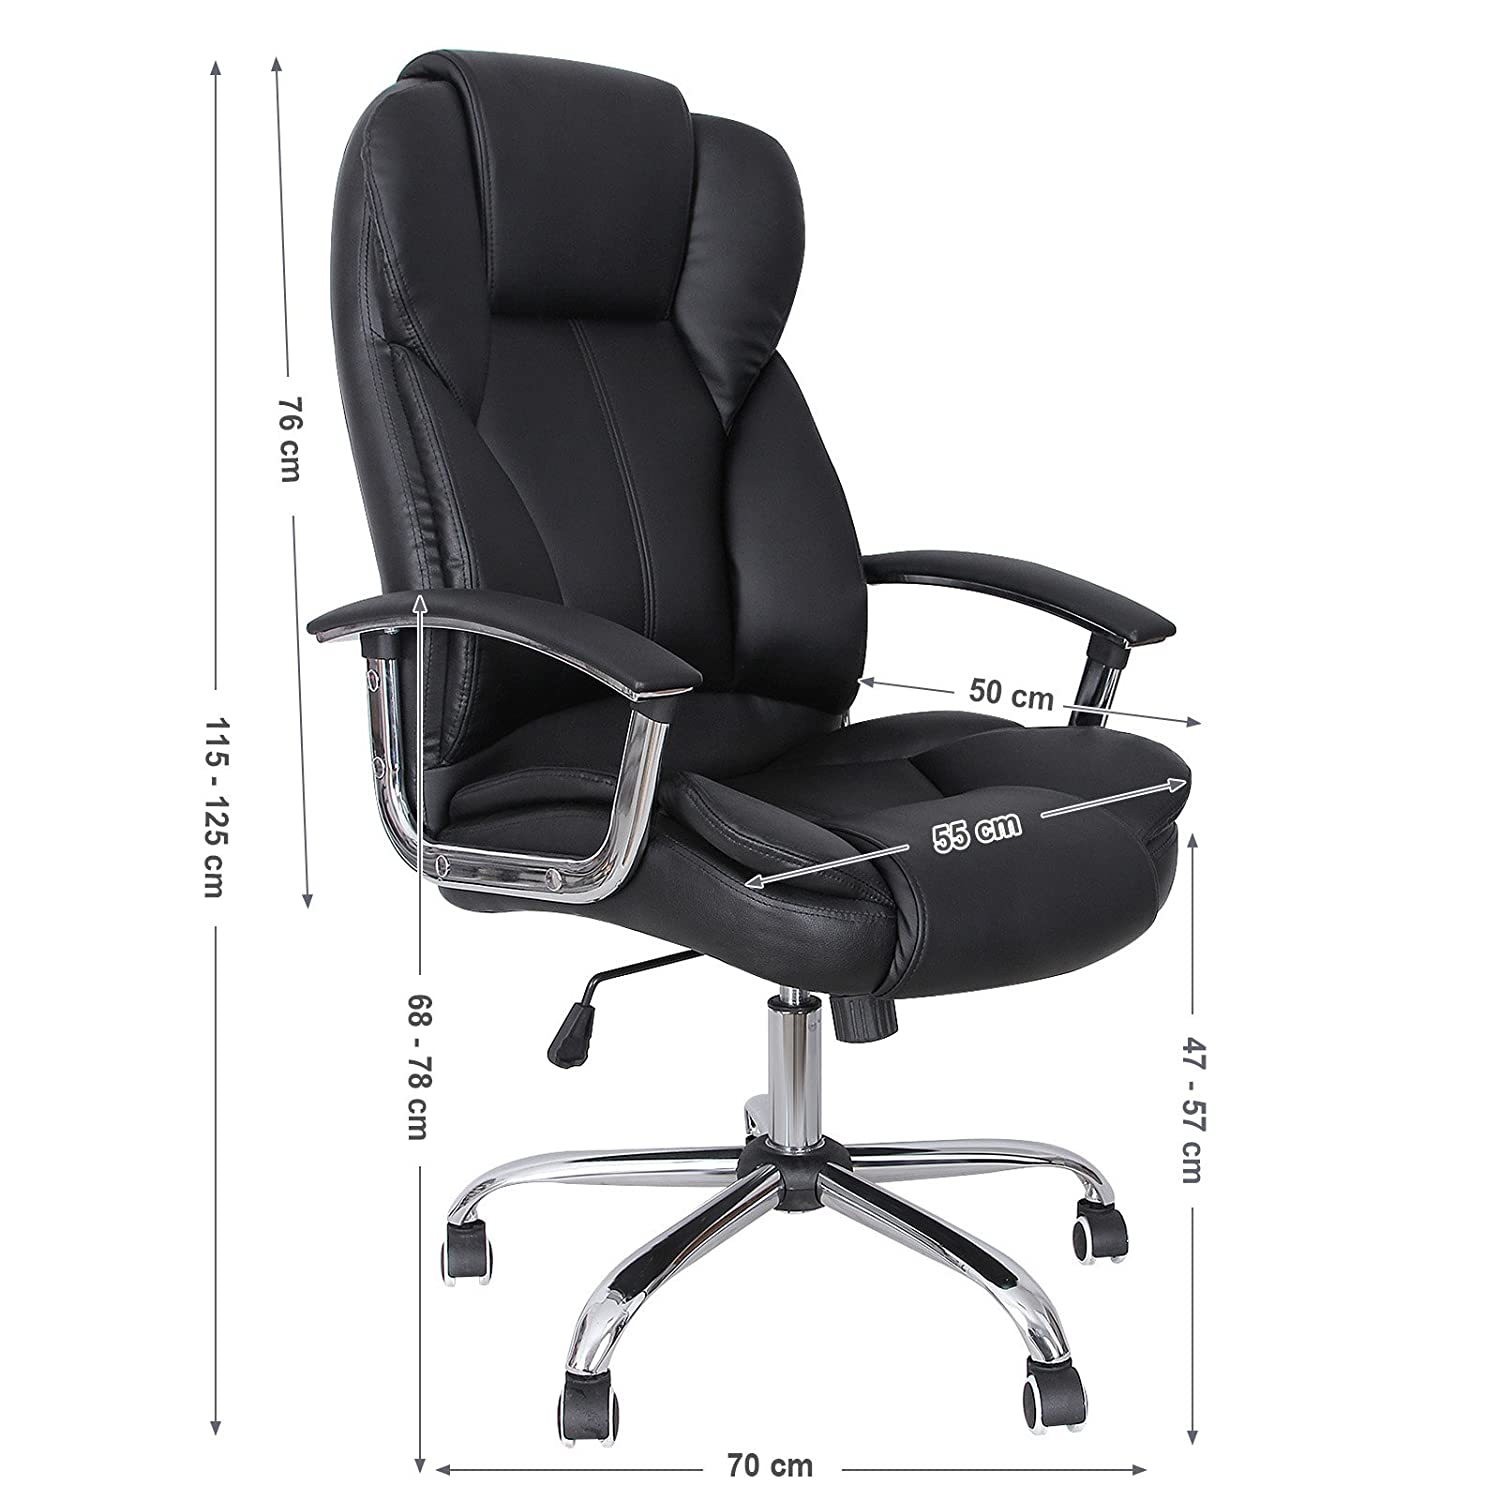 Songmics fice Chair with High Back Seat and Tilt Function